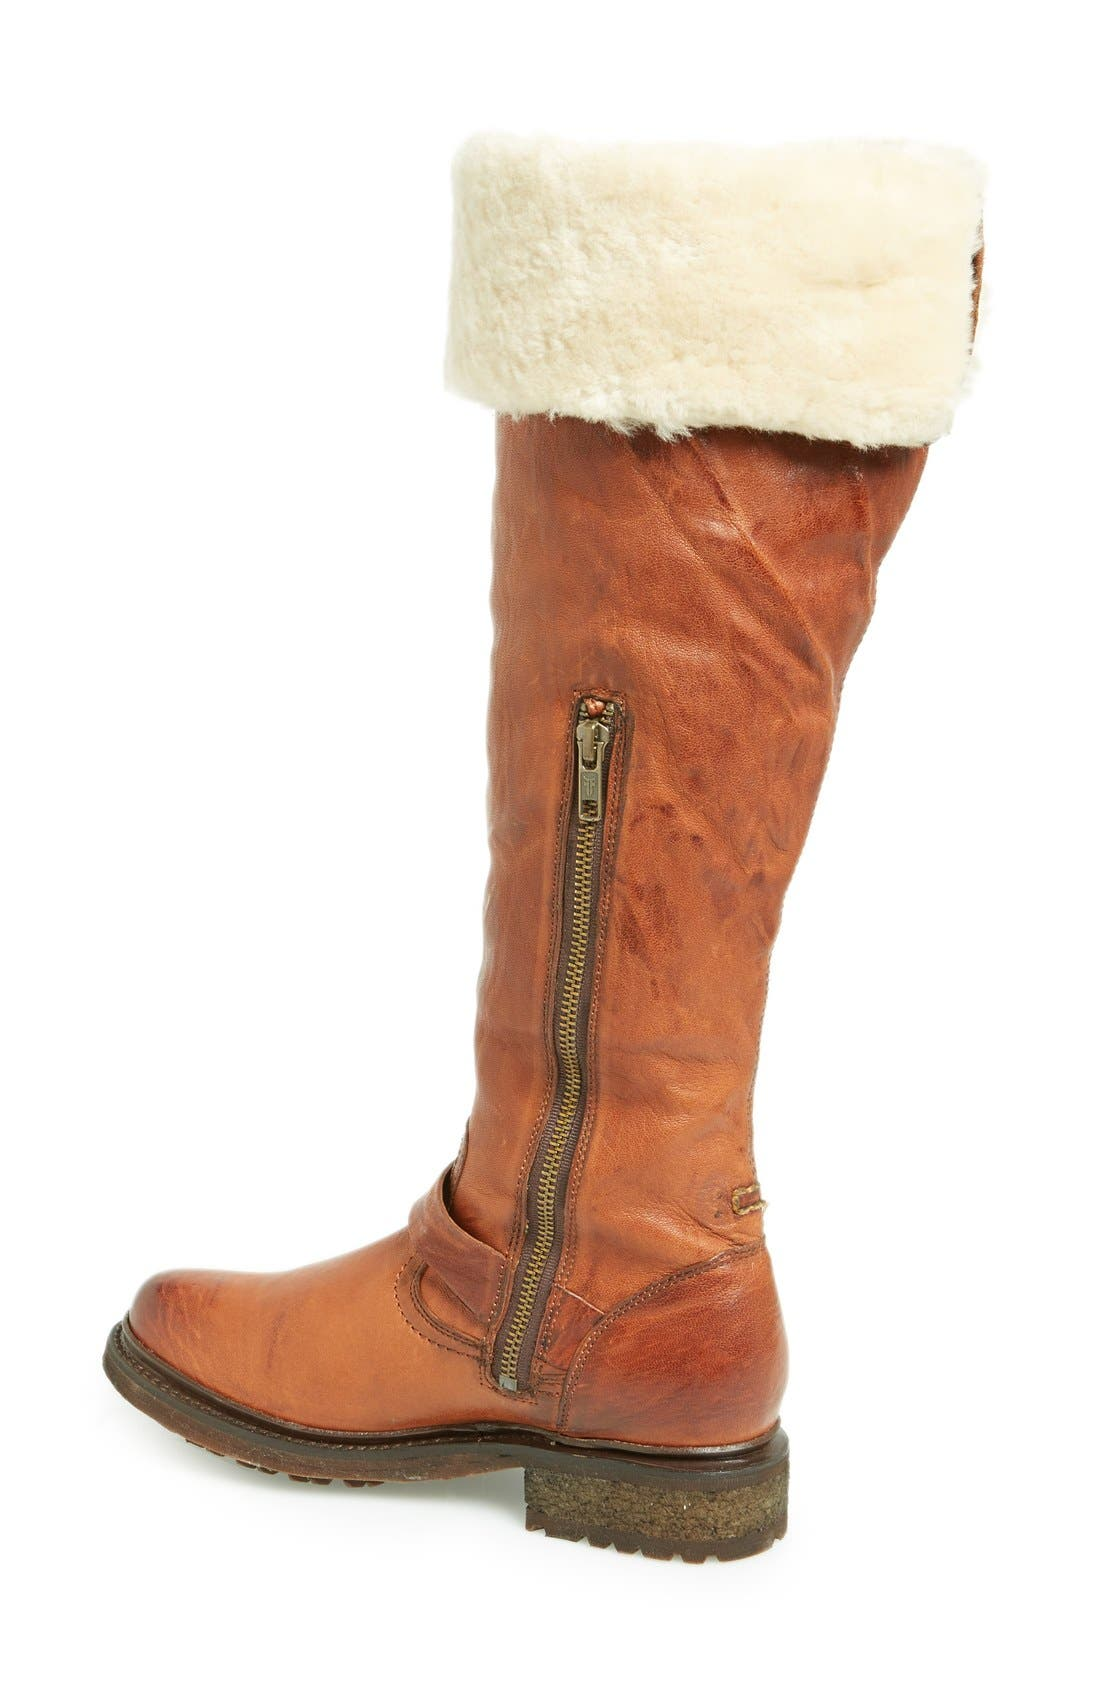 Alternate Image 2  - Frye 'Valerie' Cuff Over the Knee Boot (Women)